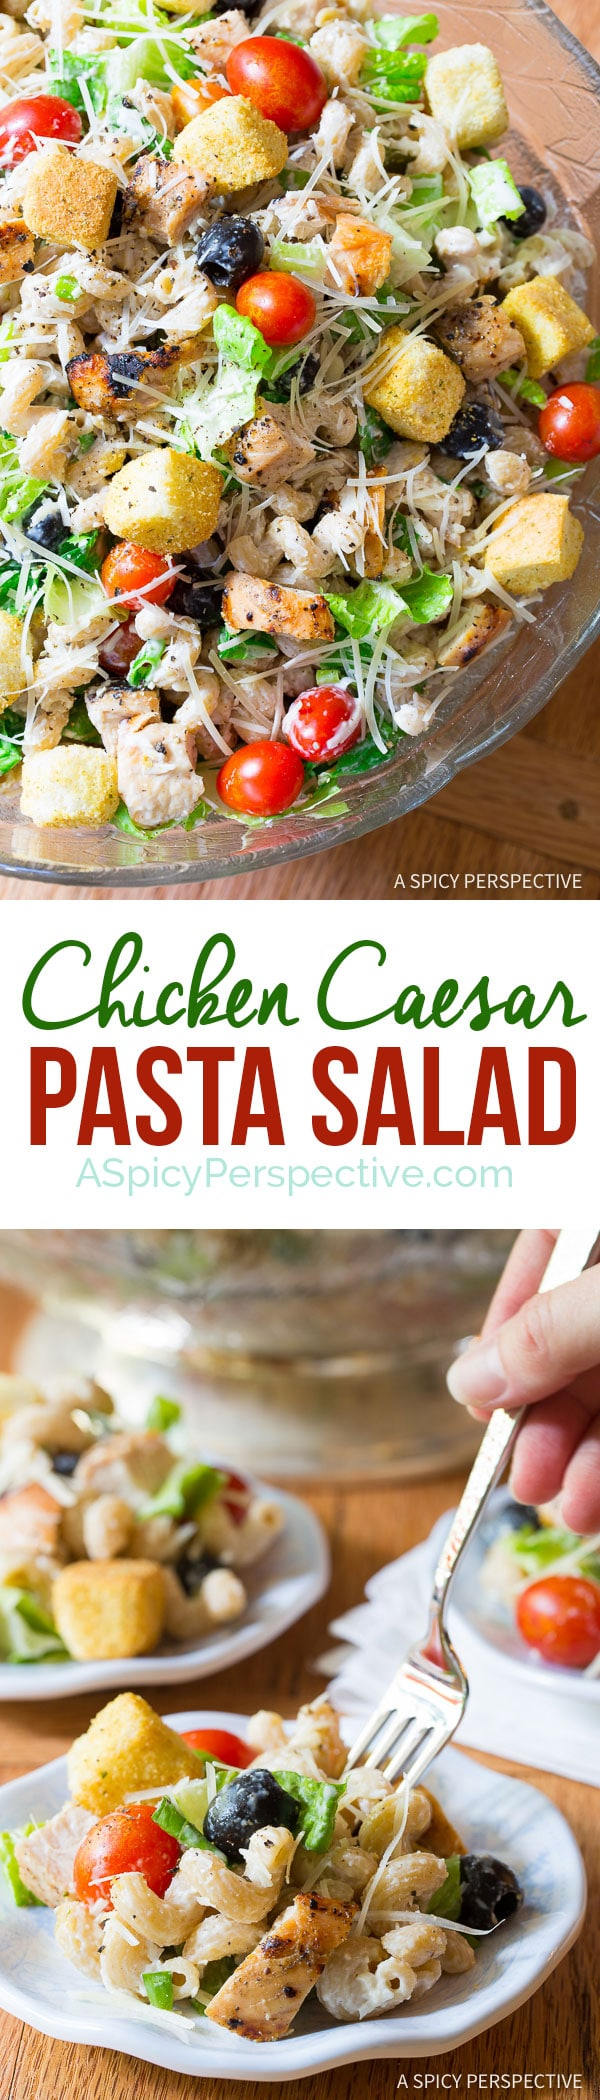 Try this Light and Healthy Chicken Caesar Pasta Salad with Homemade Caesar Dressing on ASpicyPerspective.com.